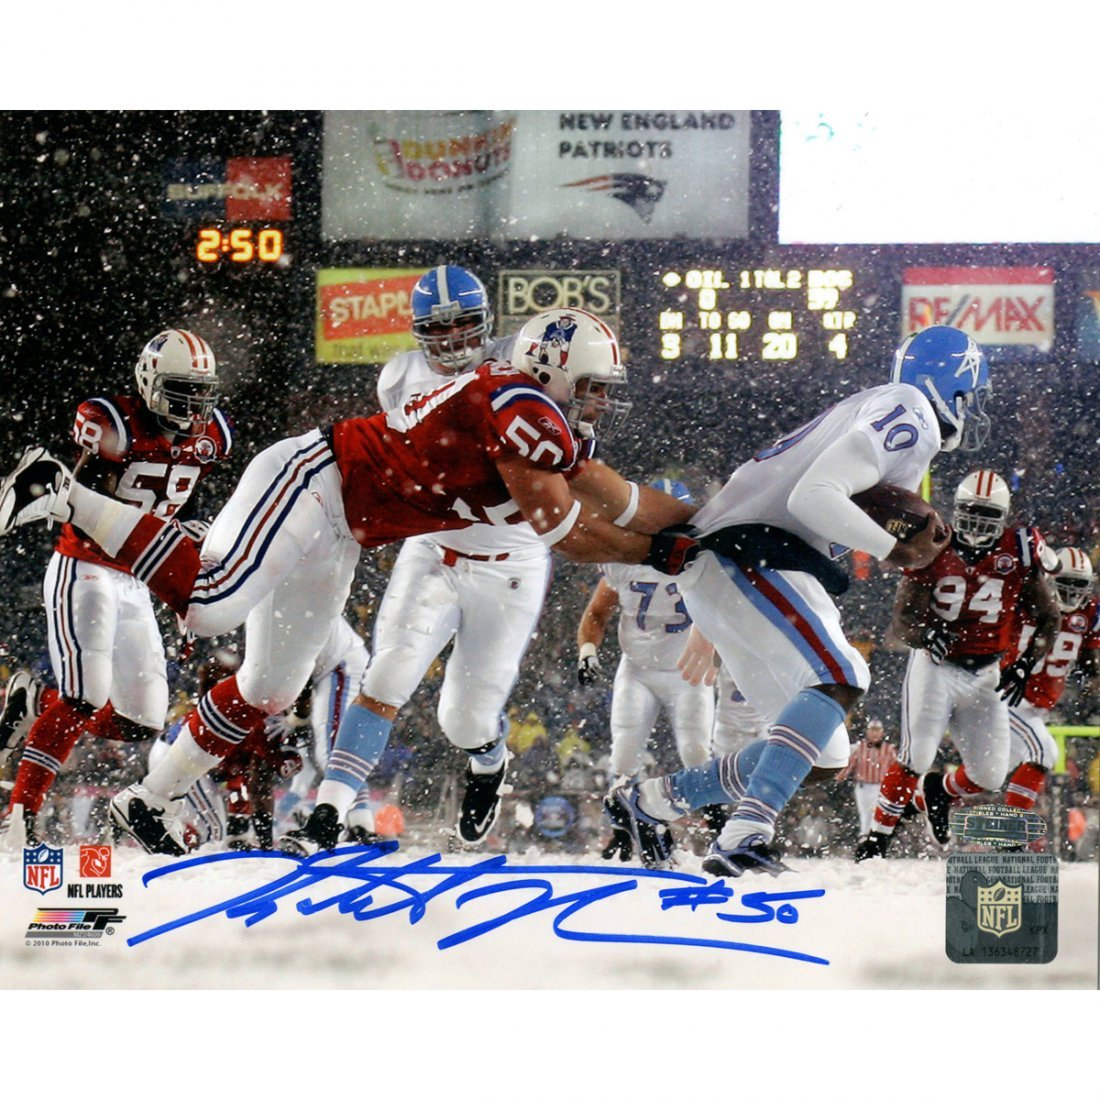 Rob Ninkovich Signed New England Patriots vs Oilers In